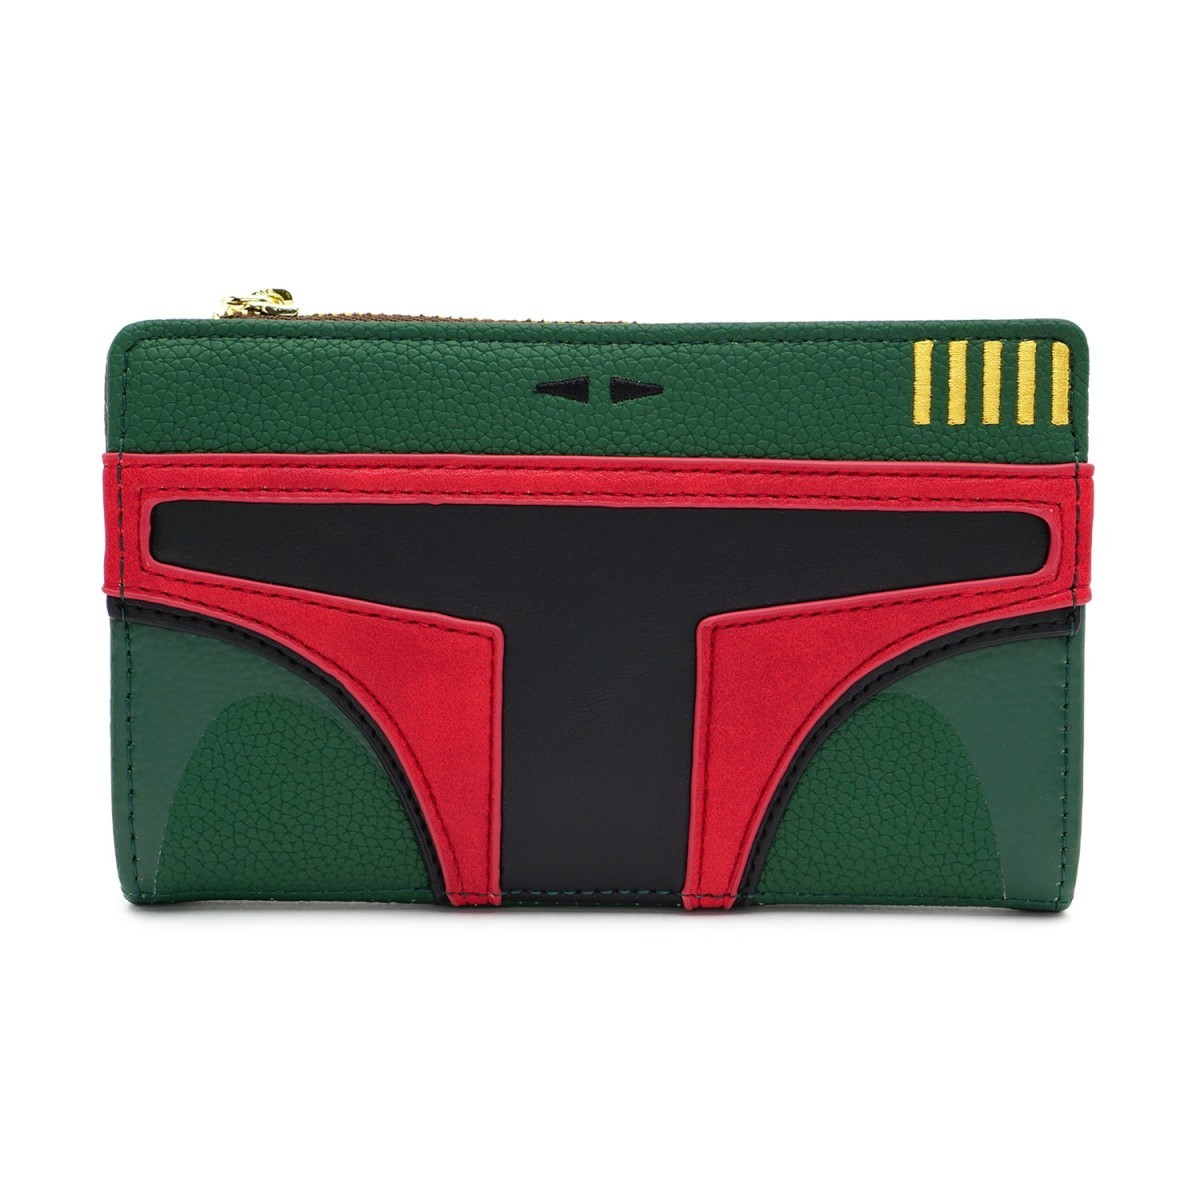 Loungefly: Star Wars Flap Purse - Boba Fett image